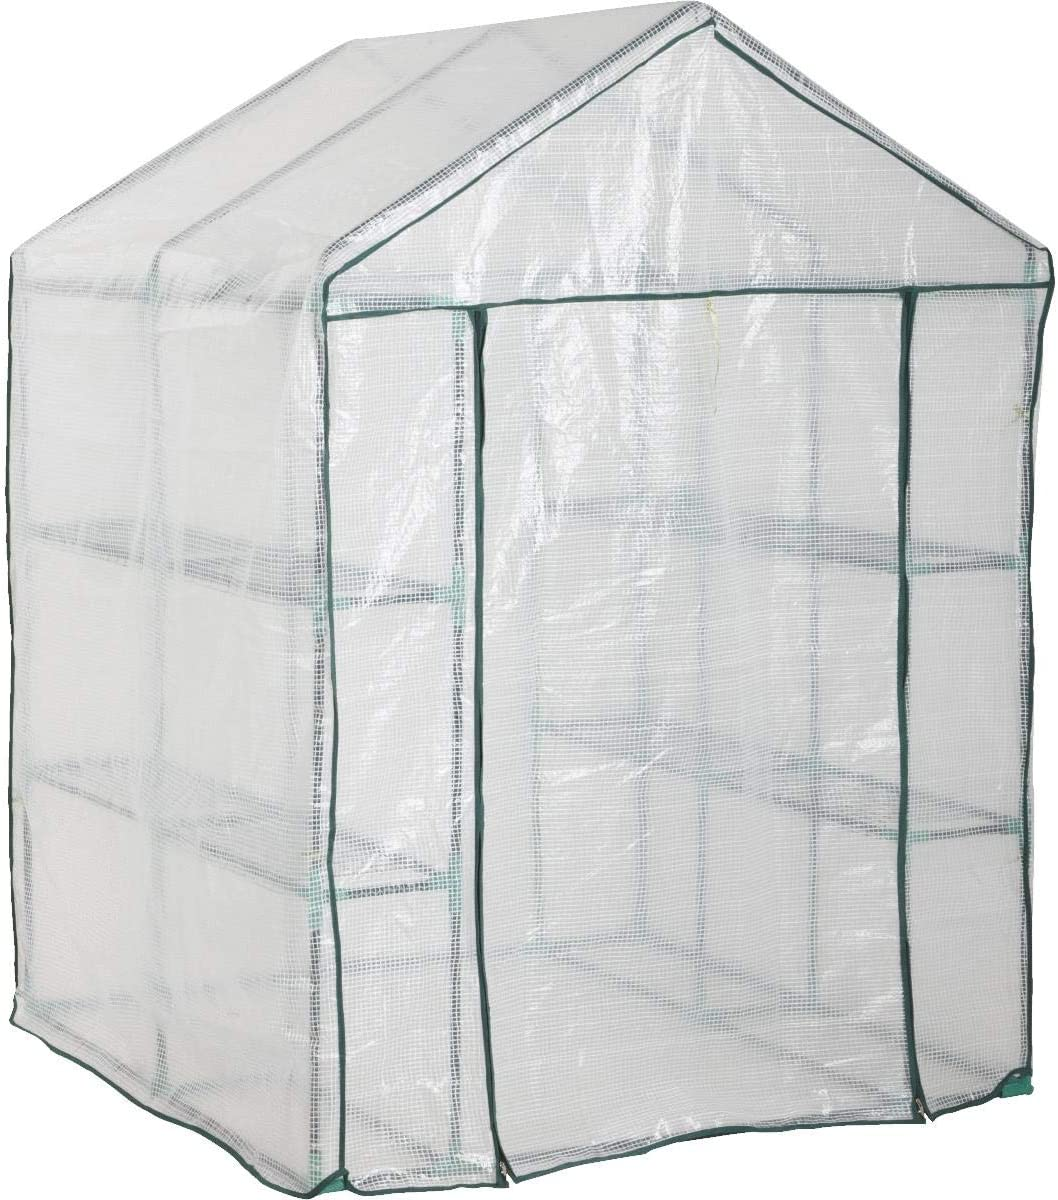 SIM SUPPLY Large Greenhouse Cover